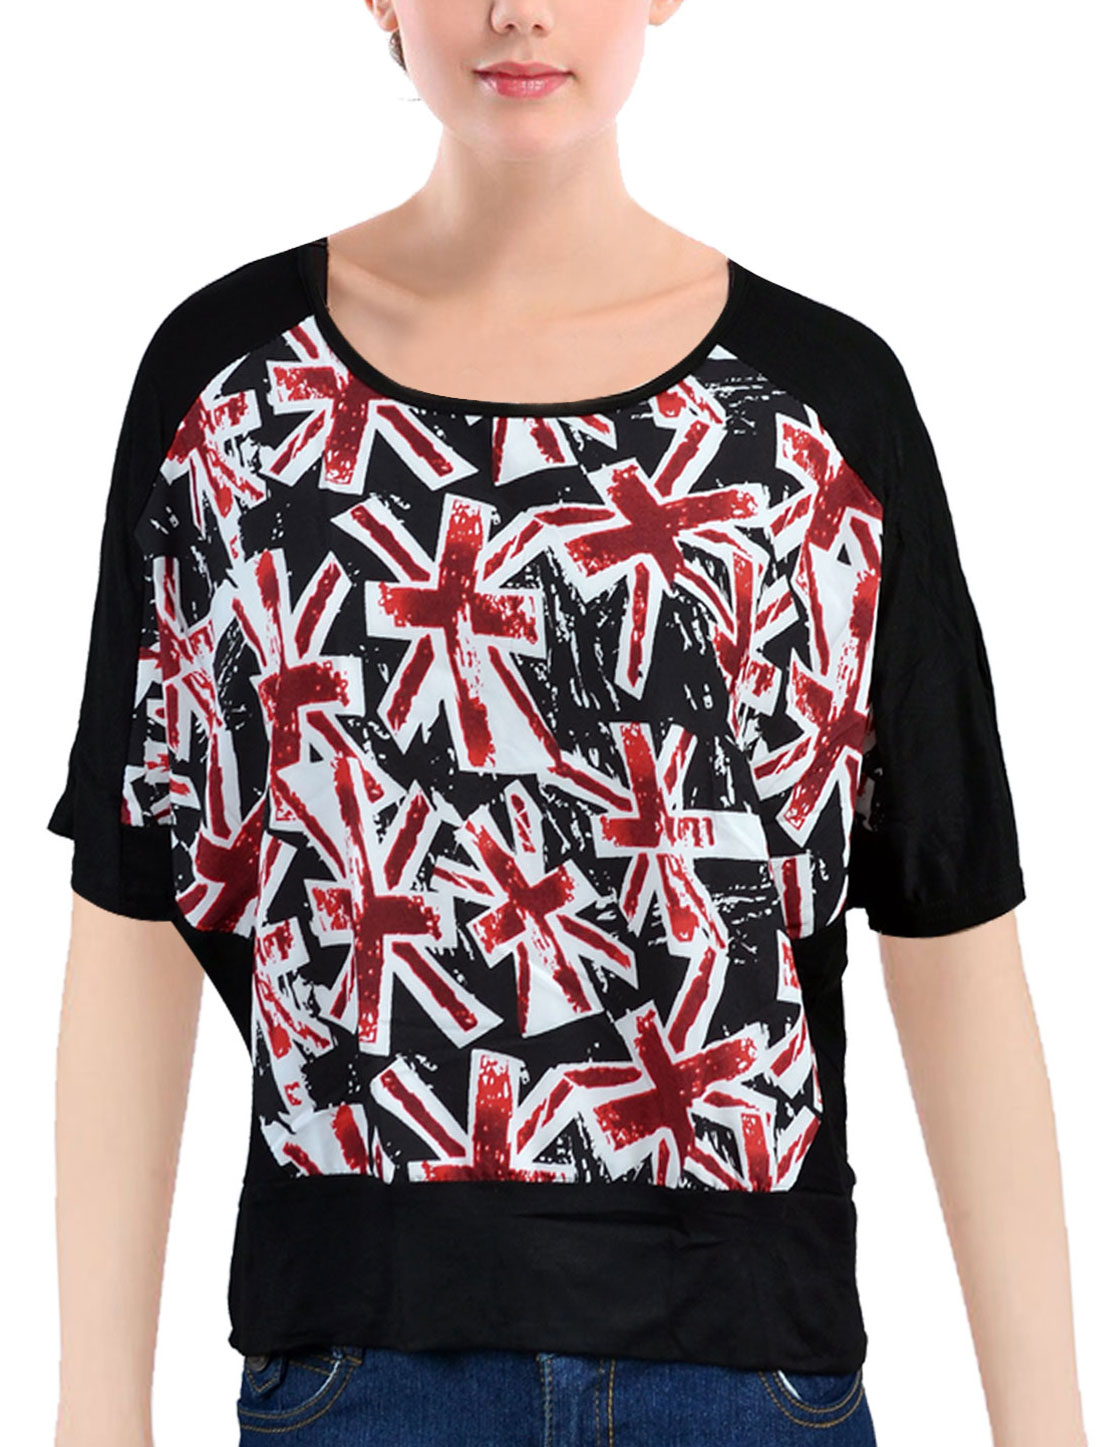 Lady Black Burgundy White Union Jack Pattern Pullover Blouse Batwing Shirt XL